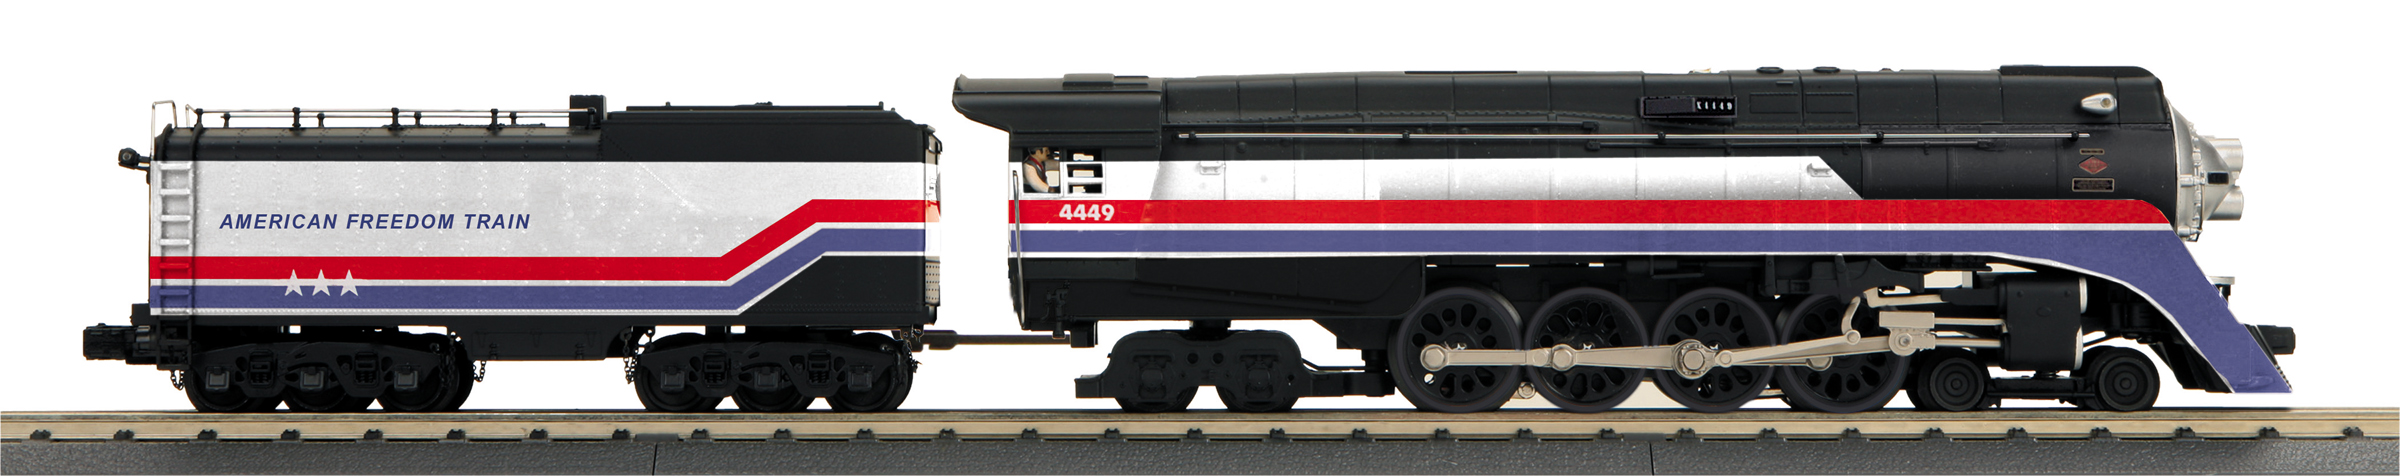 American Freedom Train 4-8-4 GS-4 Northern Steam Engine image